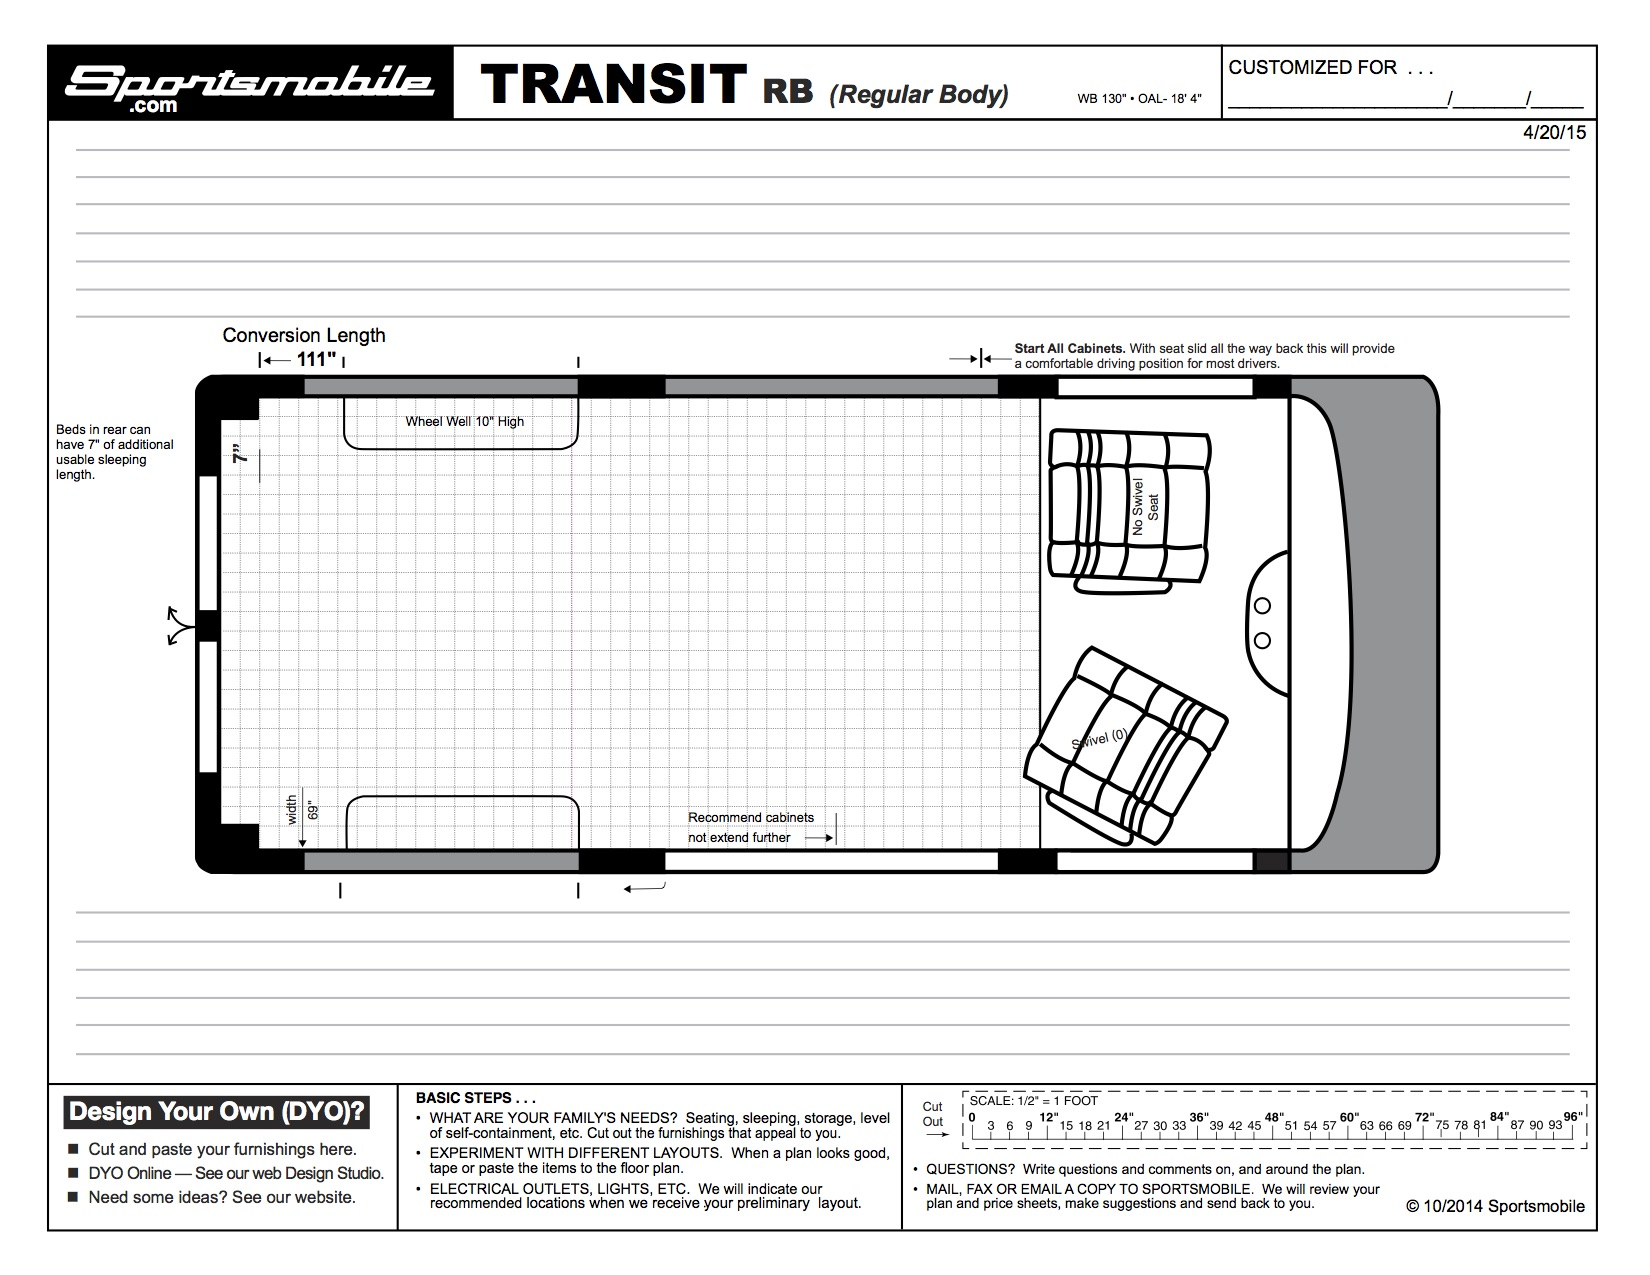 hight resolution of ford transit rb dimensions ford transit rb dimensions jpg1650 1275 375 kb